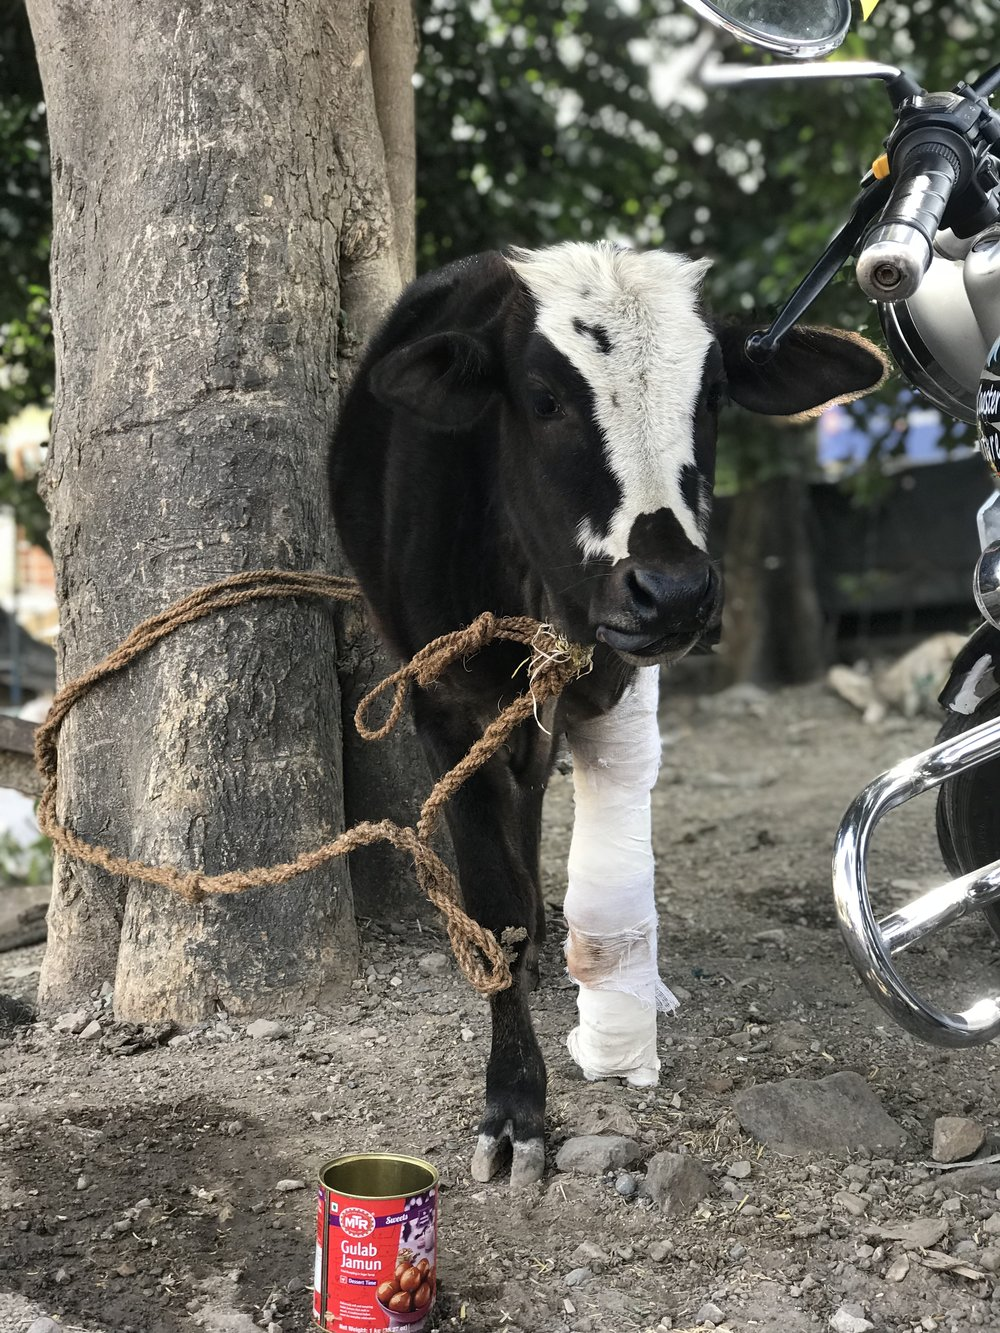 The beautiful baby calf who is tied to the tree to help his leg recover.